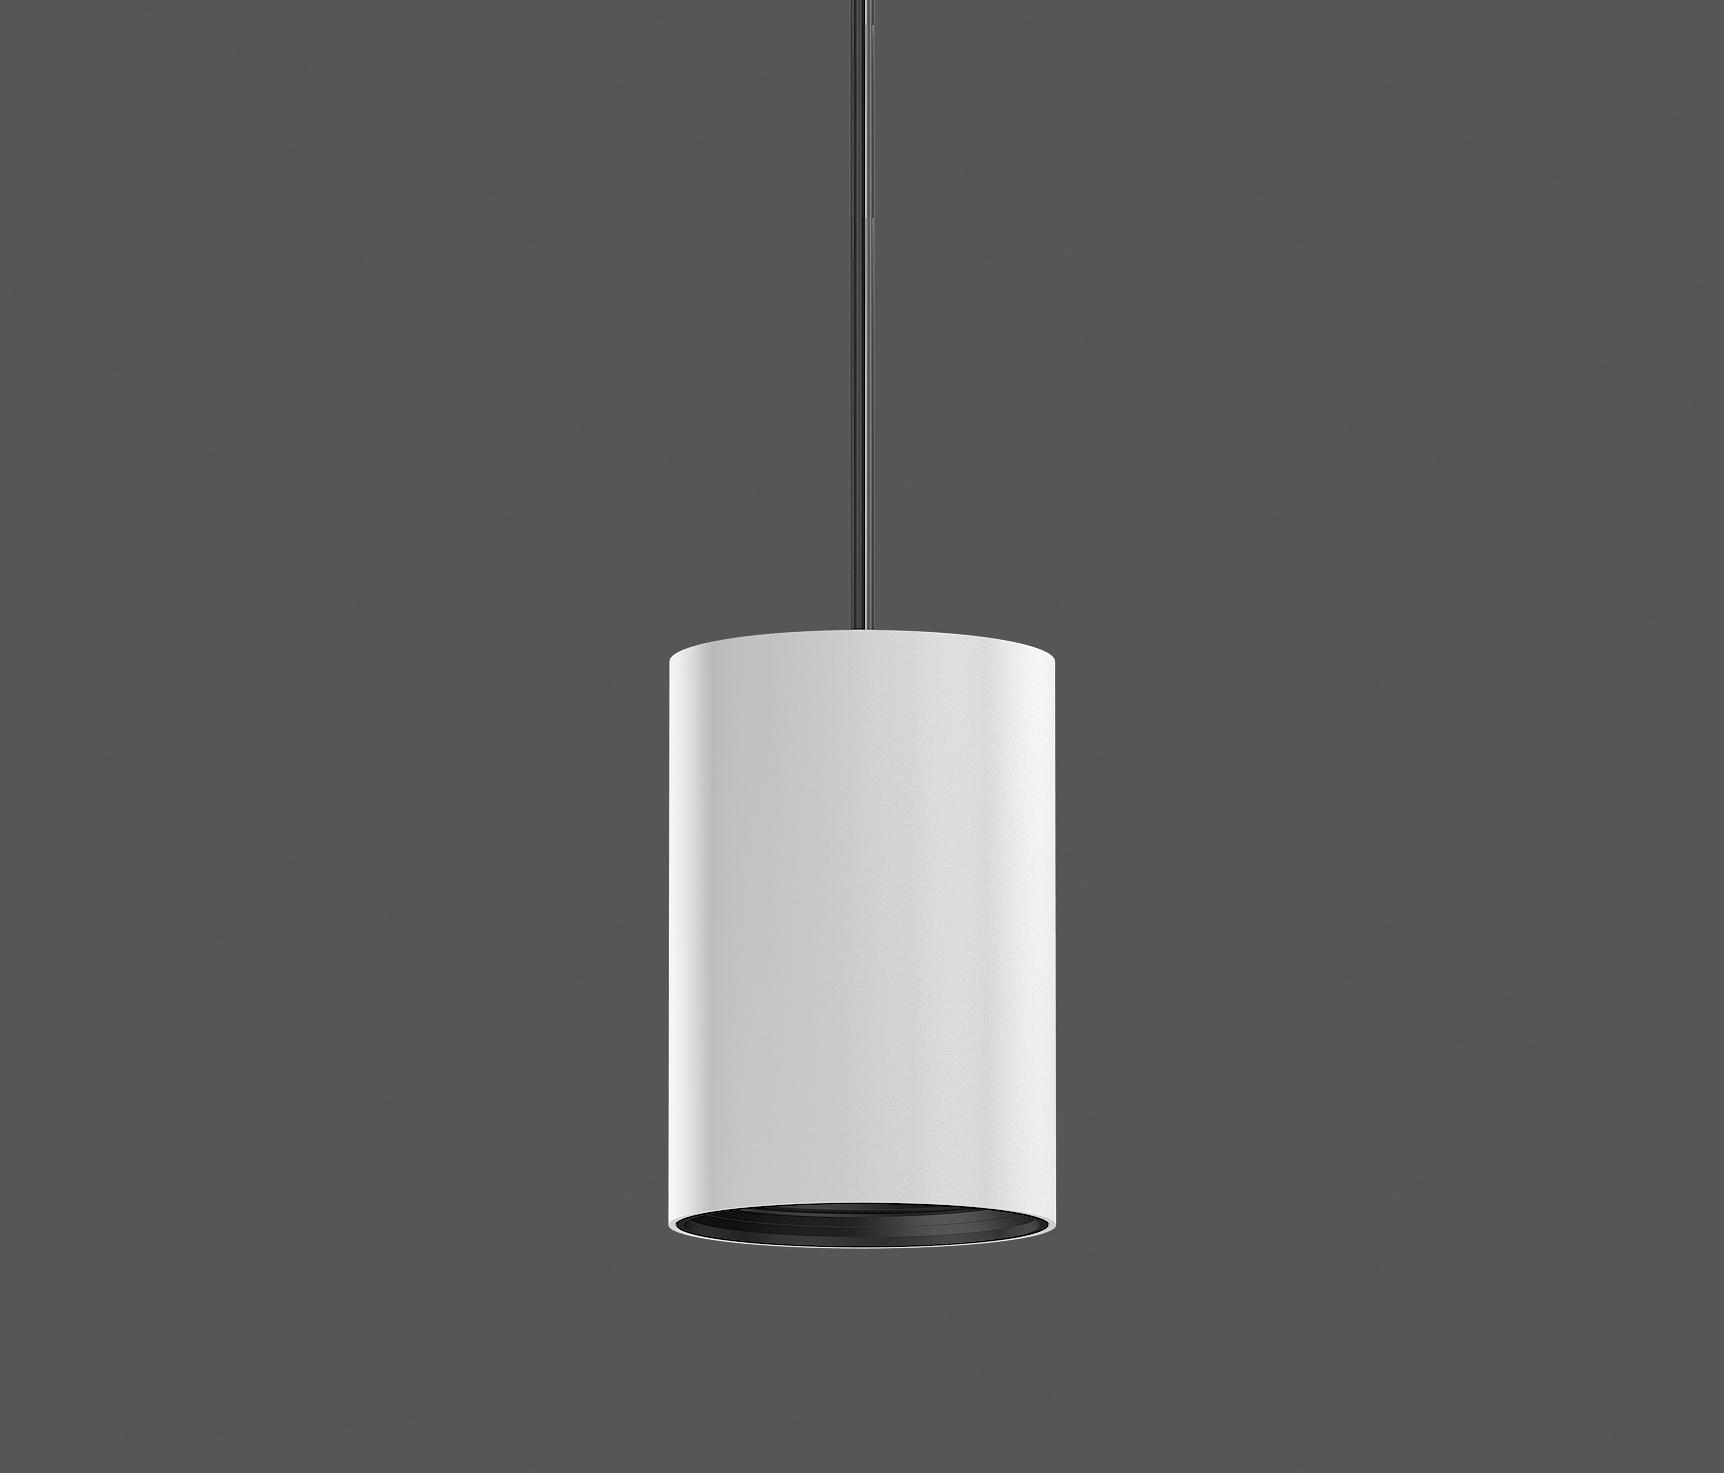 Deecos P Maxi Pendant Luminaires Suspended Lights From Rzb